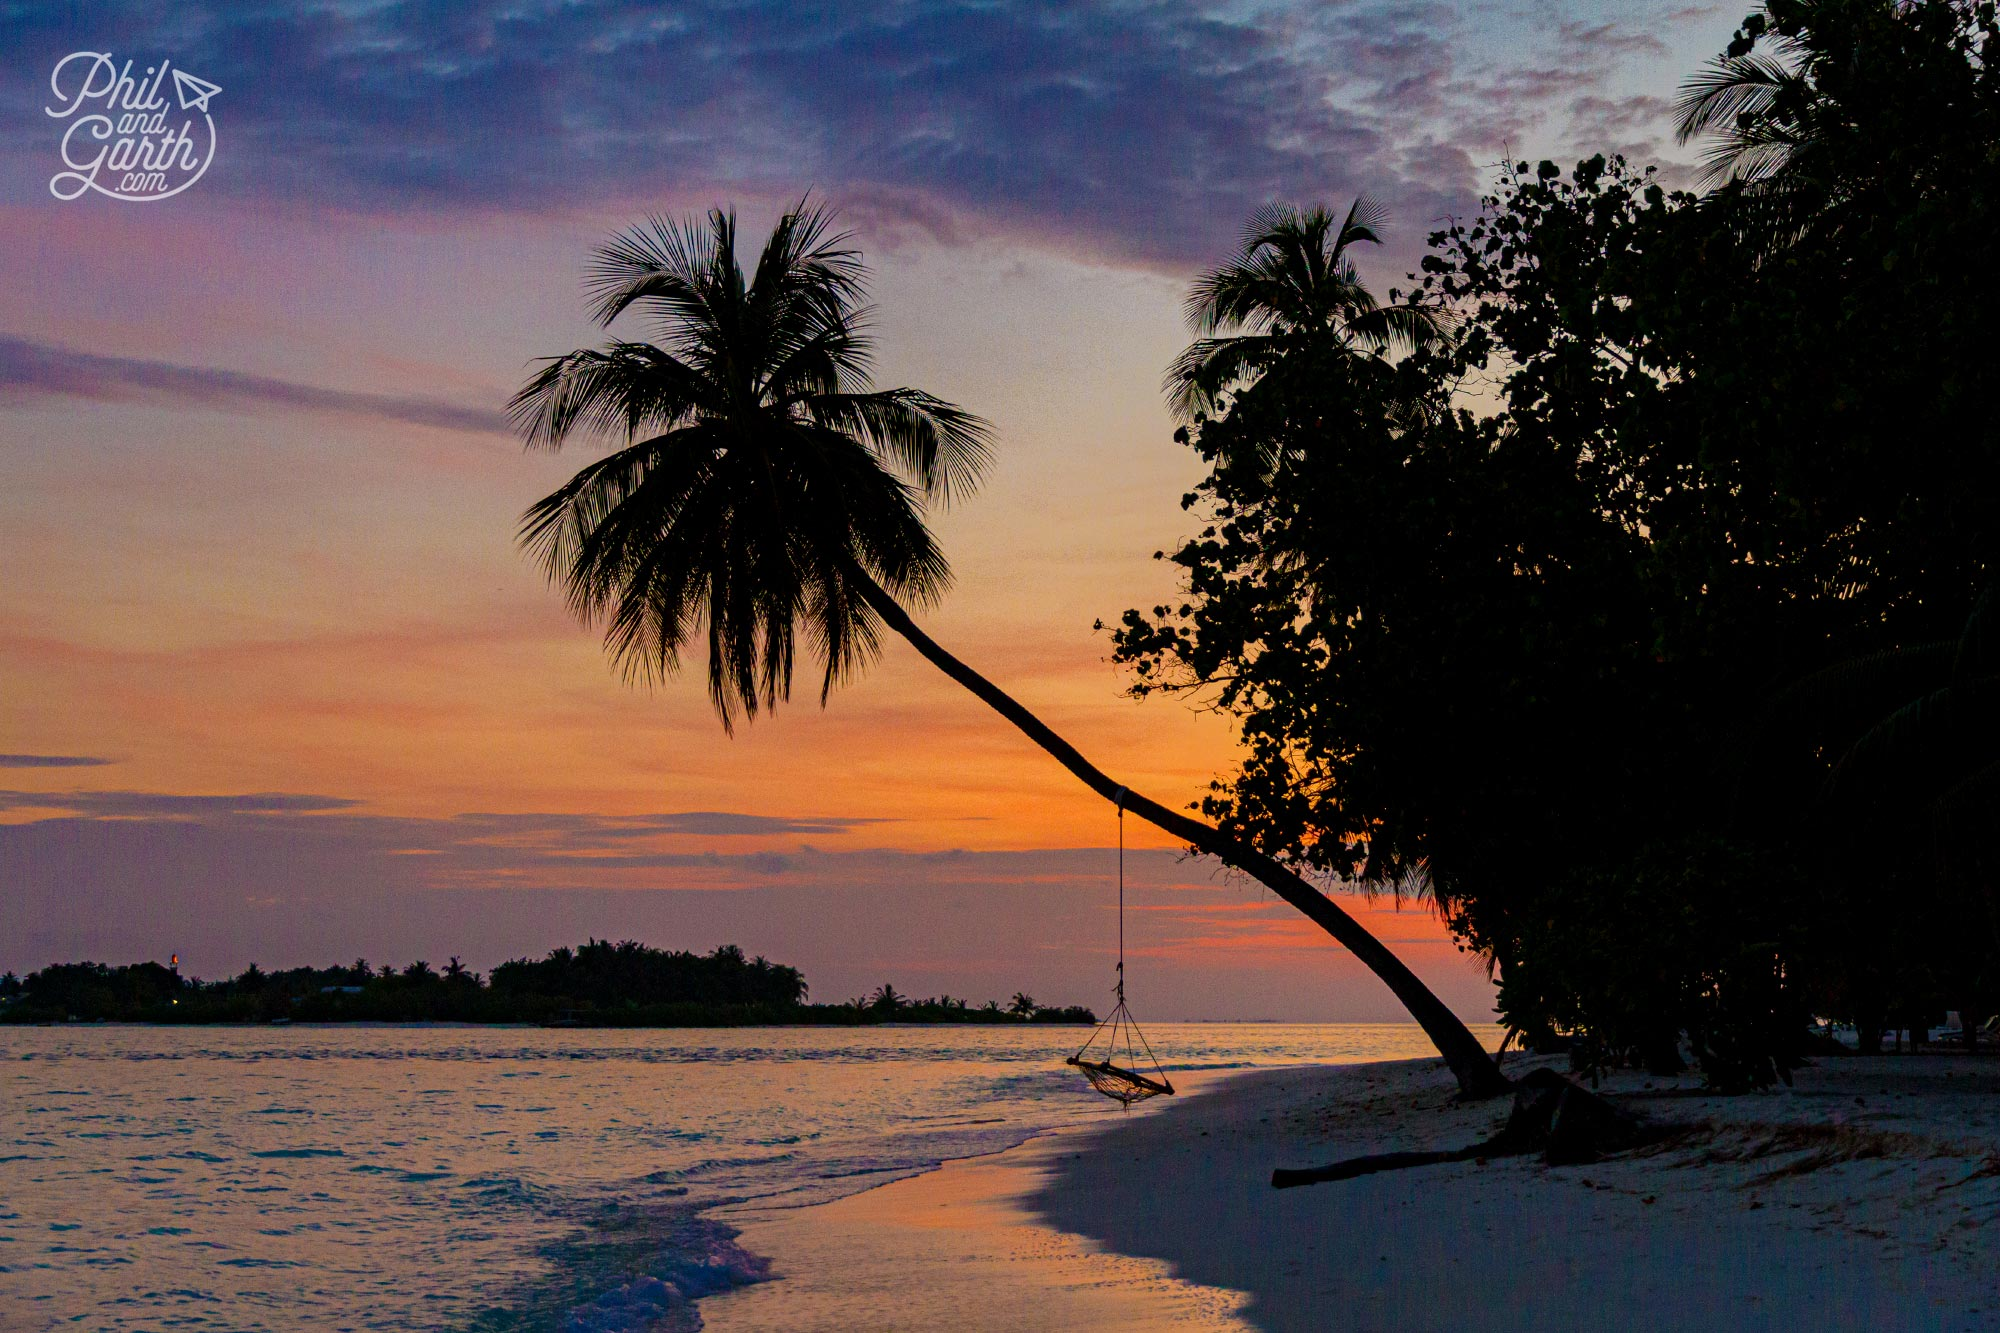 Another gorgeous sunset on tropical Meeru island